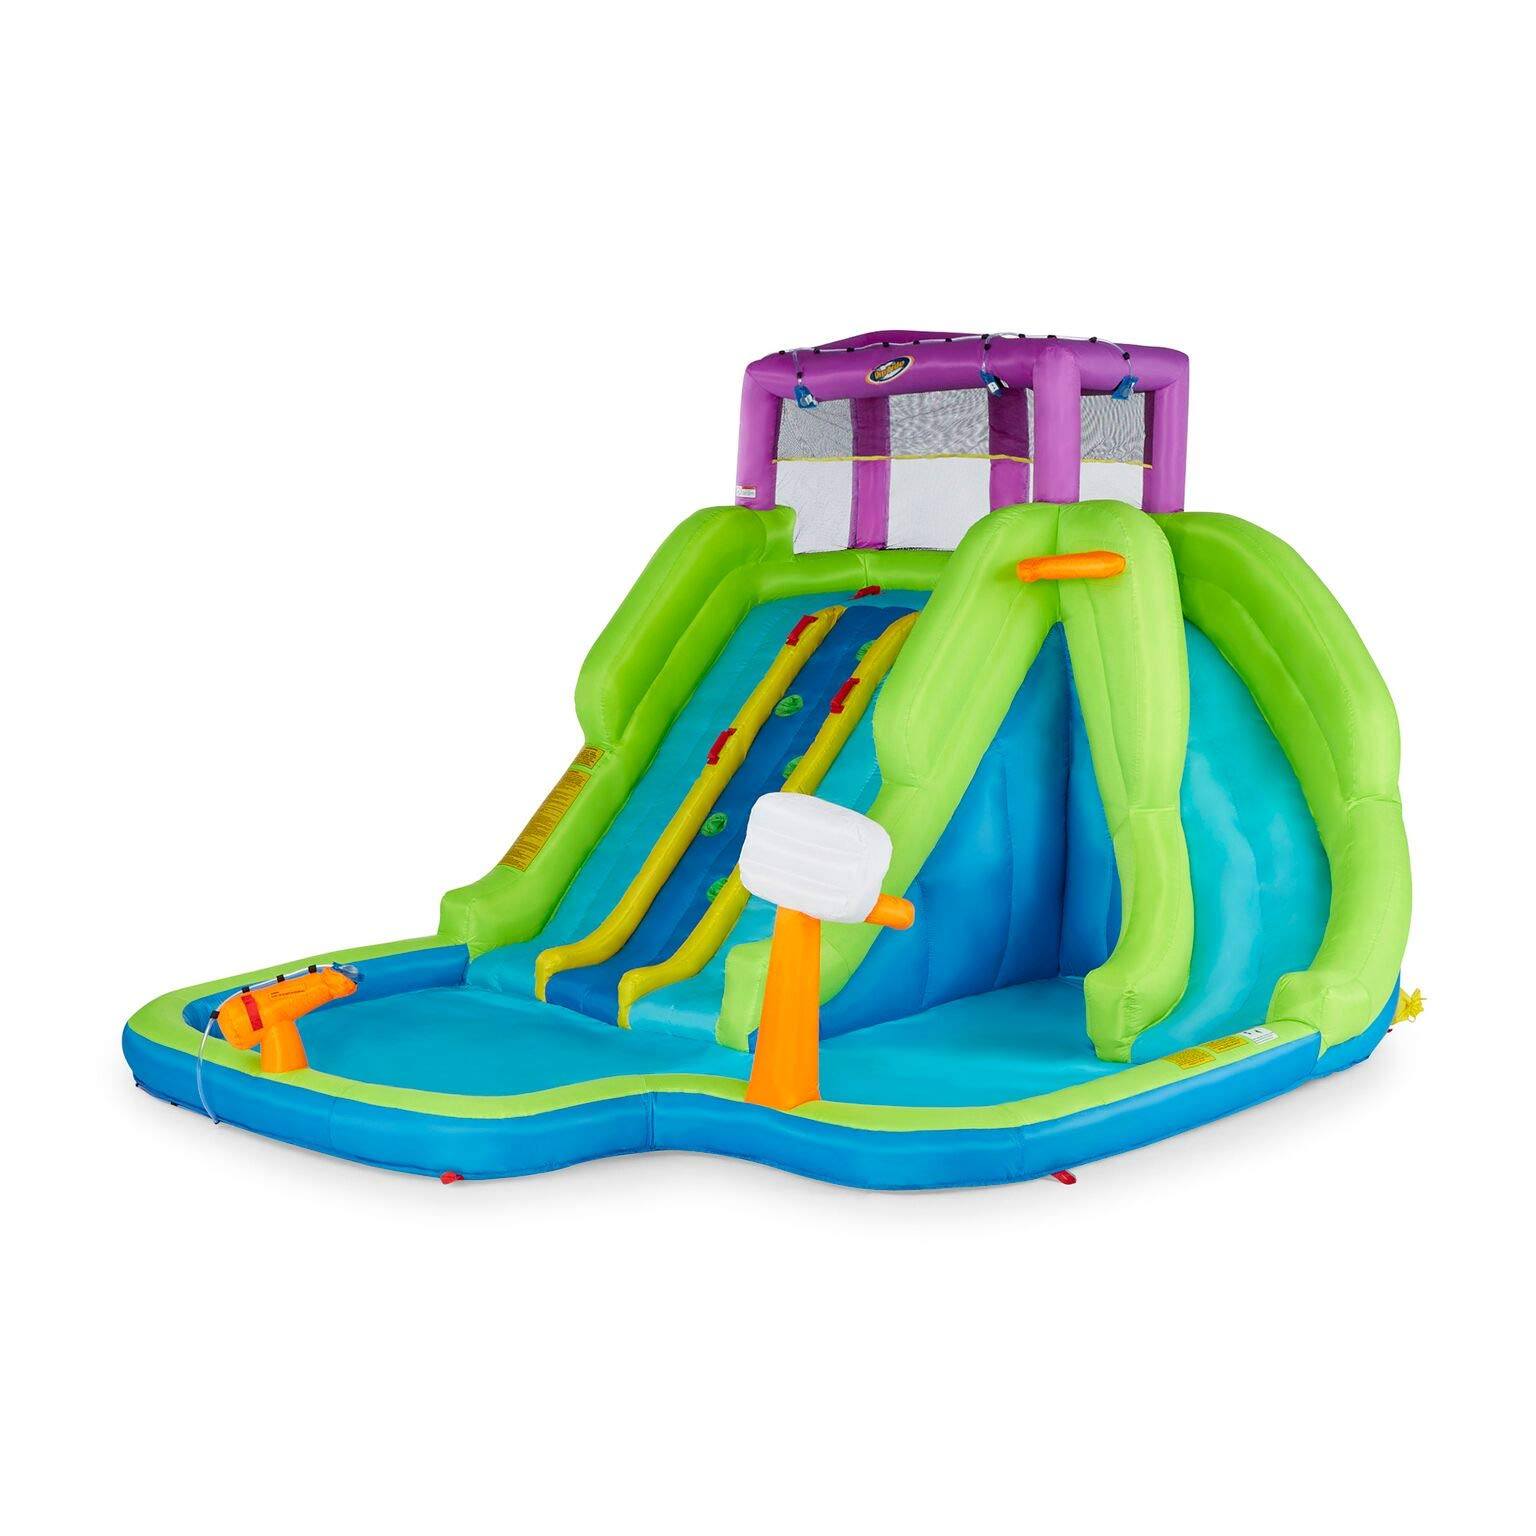 Kahuna Triple Blast Kids Outdoor Inflatable Splash Pool Backyard Water Slide by MAGIC UNION